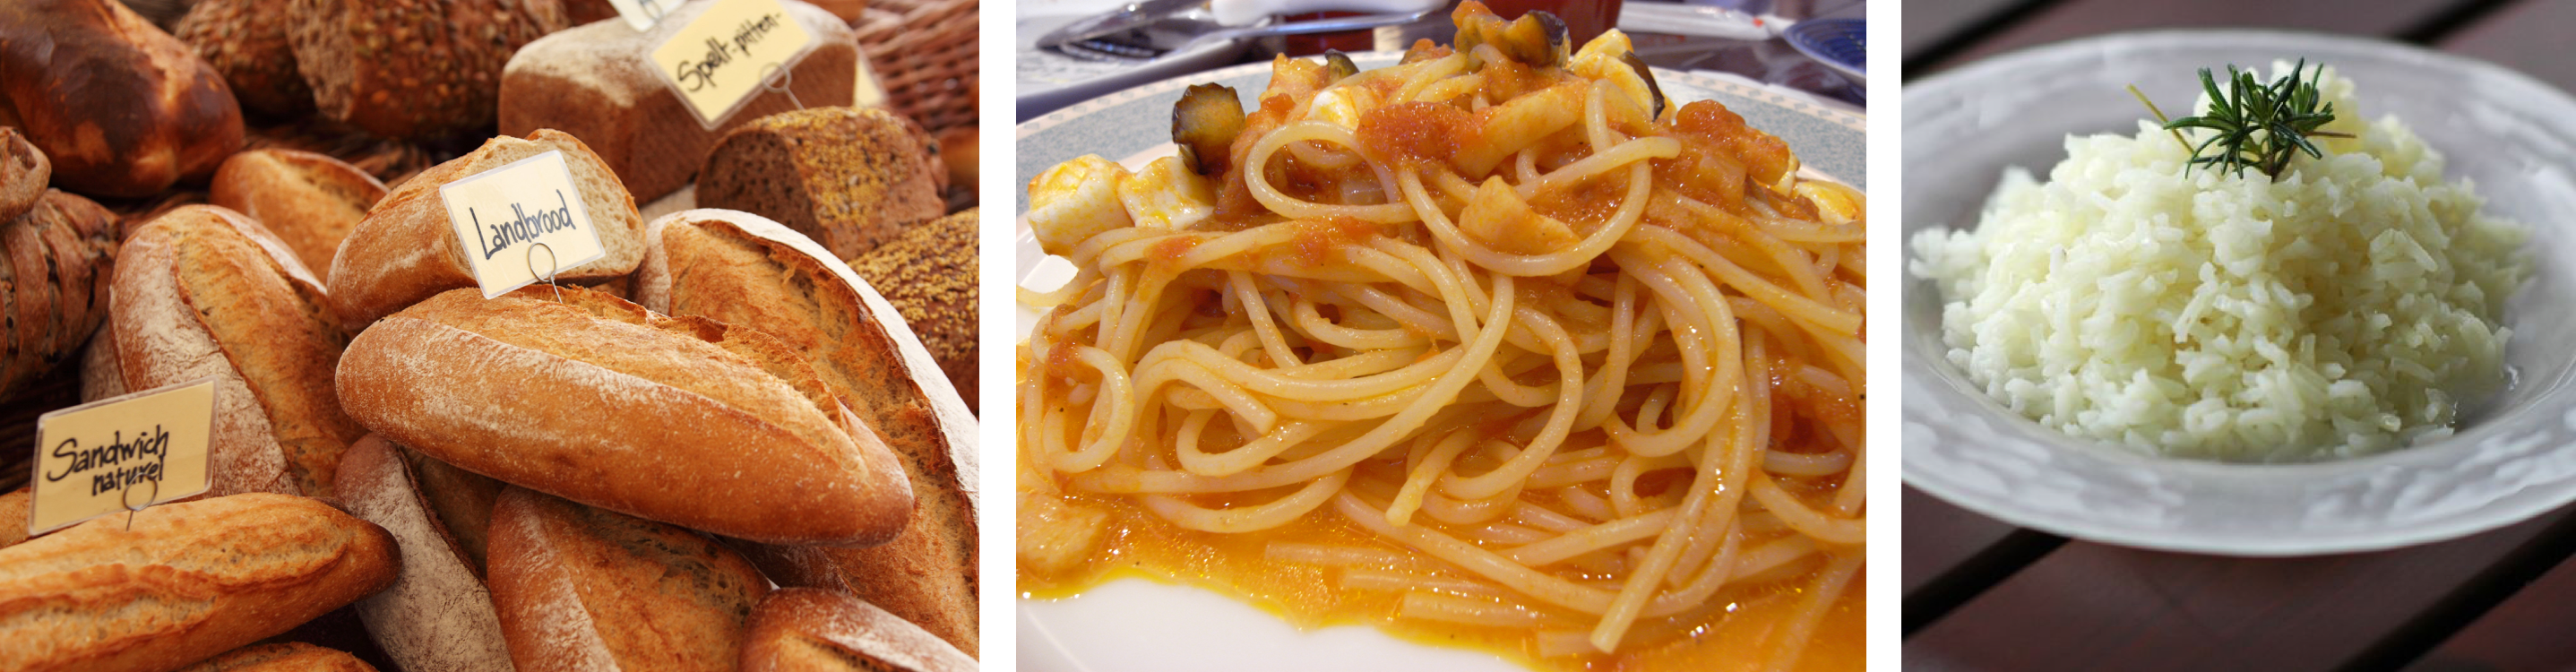 Photos of grain-based foods, from left to right: a display of bread in a bakery, a plate of spaghetti with sauce, and a bowl of plain rice topped with herbs.